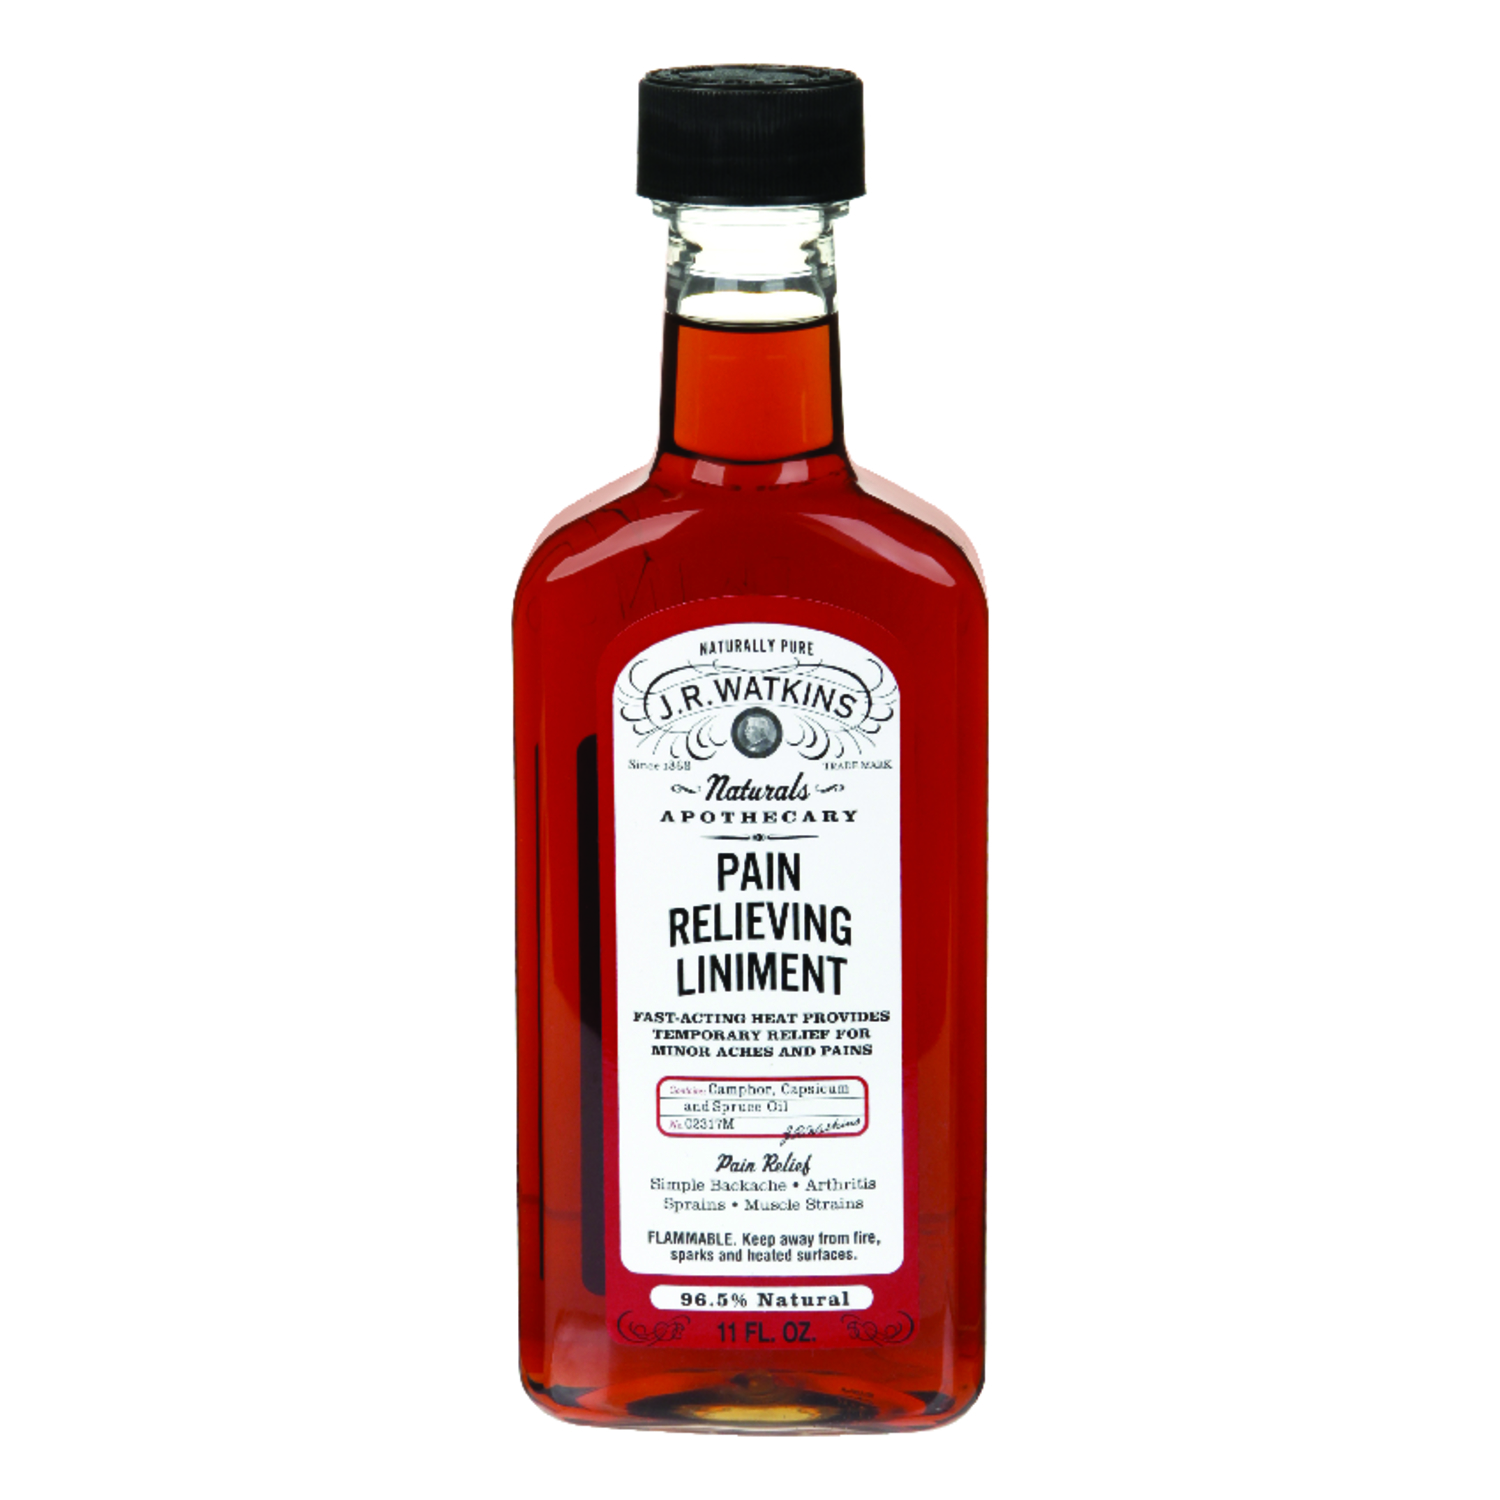 J.R.  Watkins  Orginal Pain Relieving Liniment  11 oz.